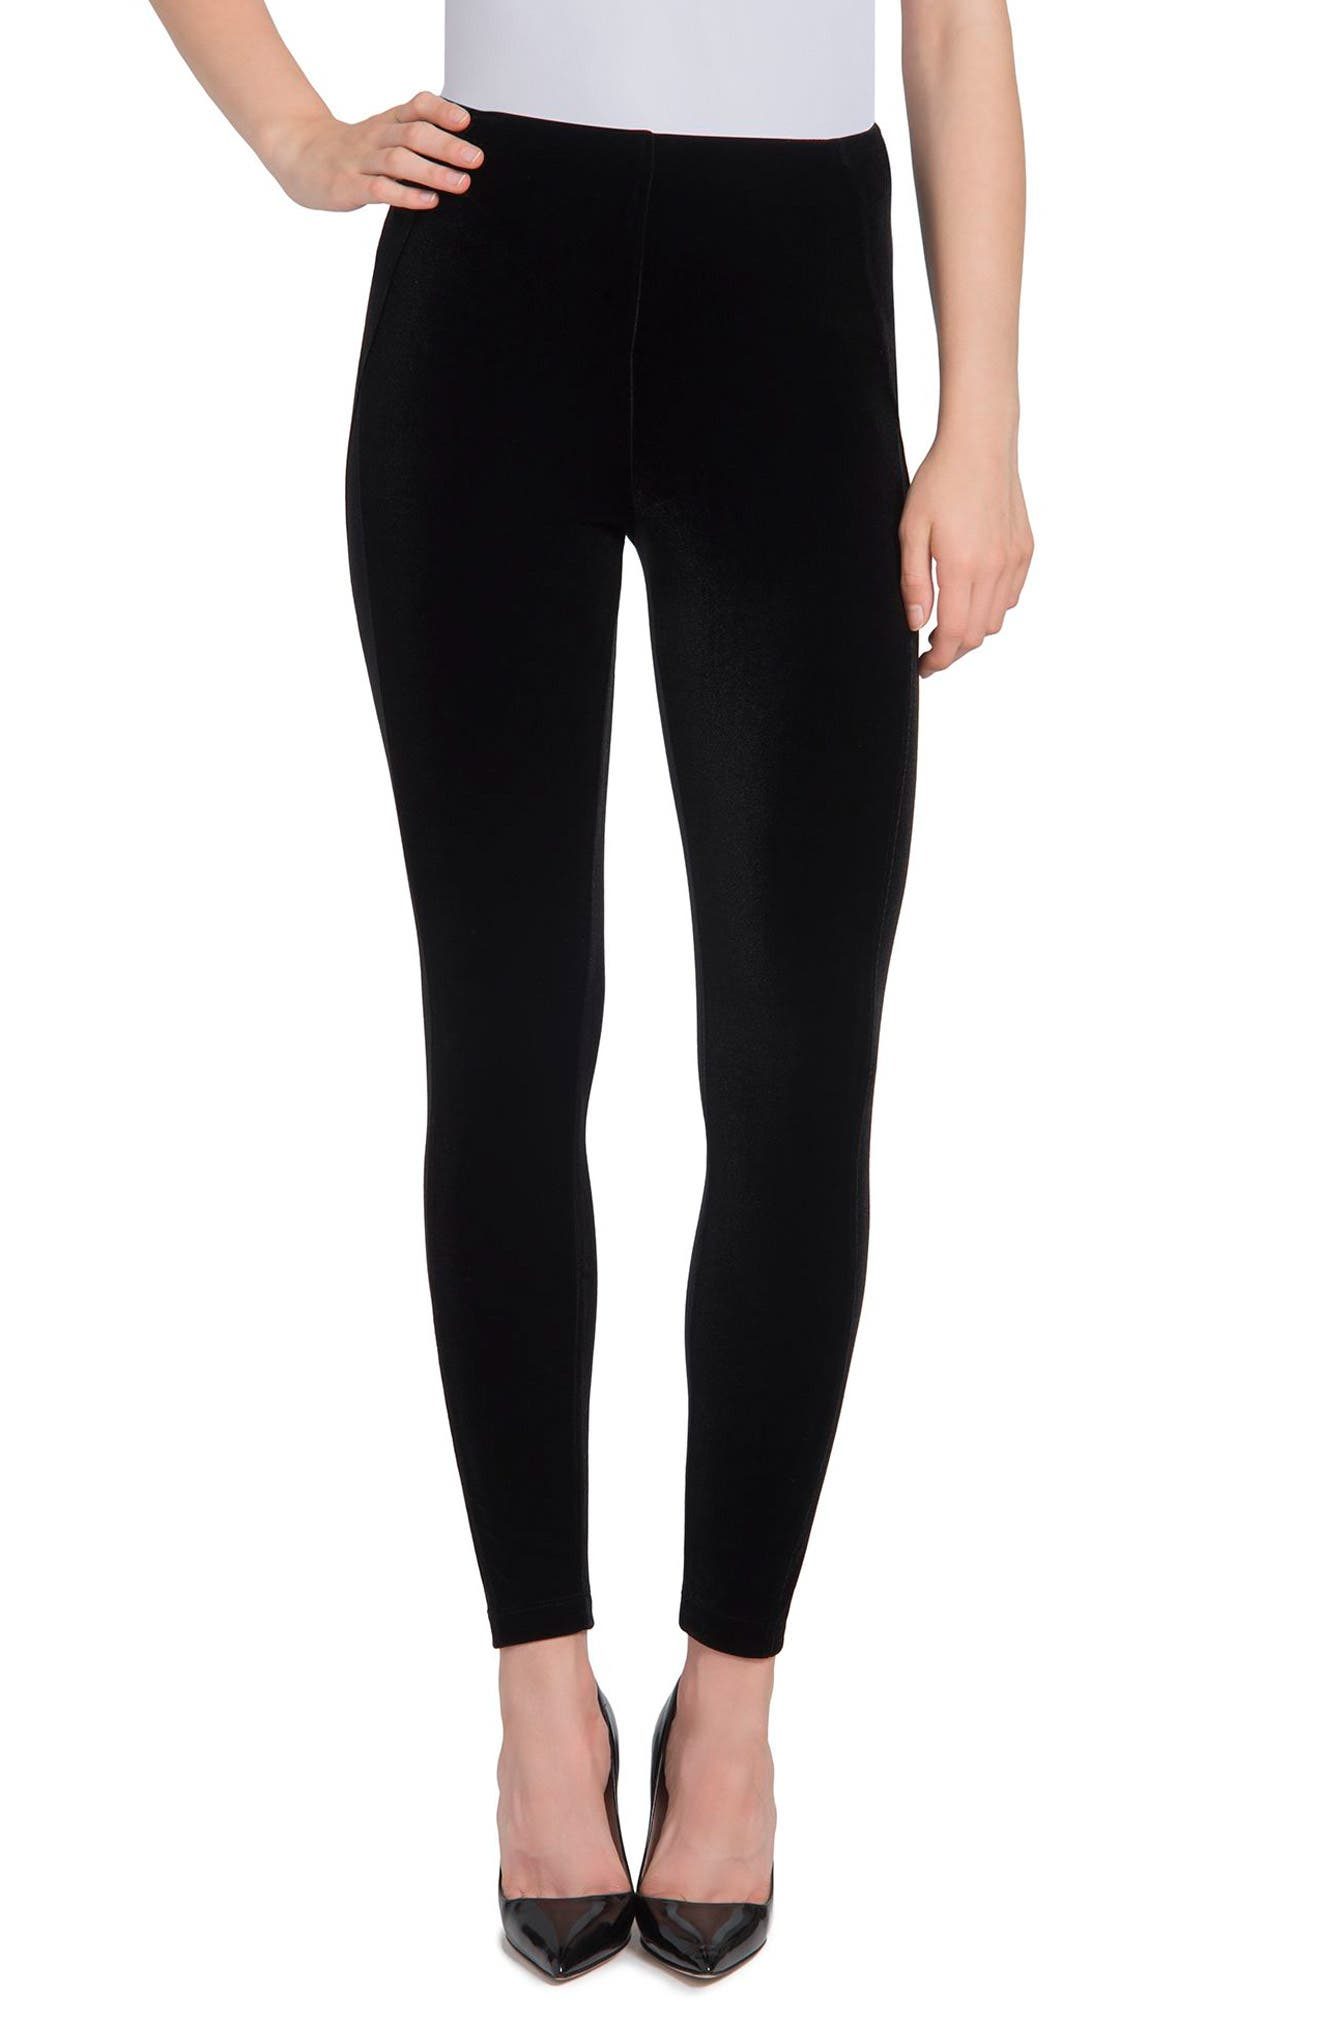 Lyssé Ella Velvet High Waist Leggings